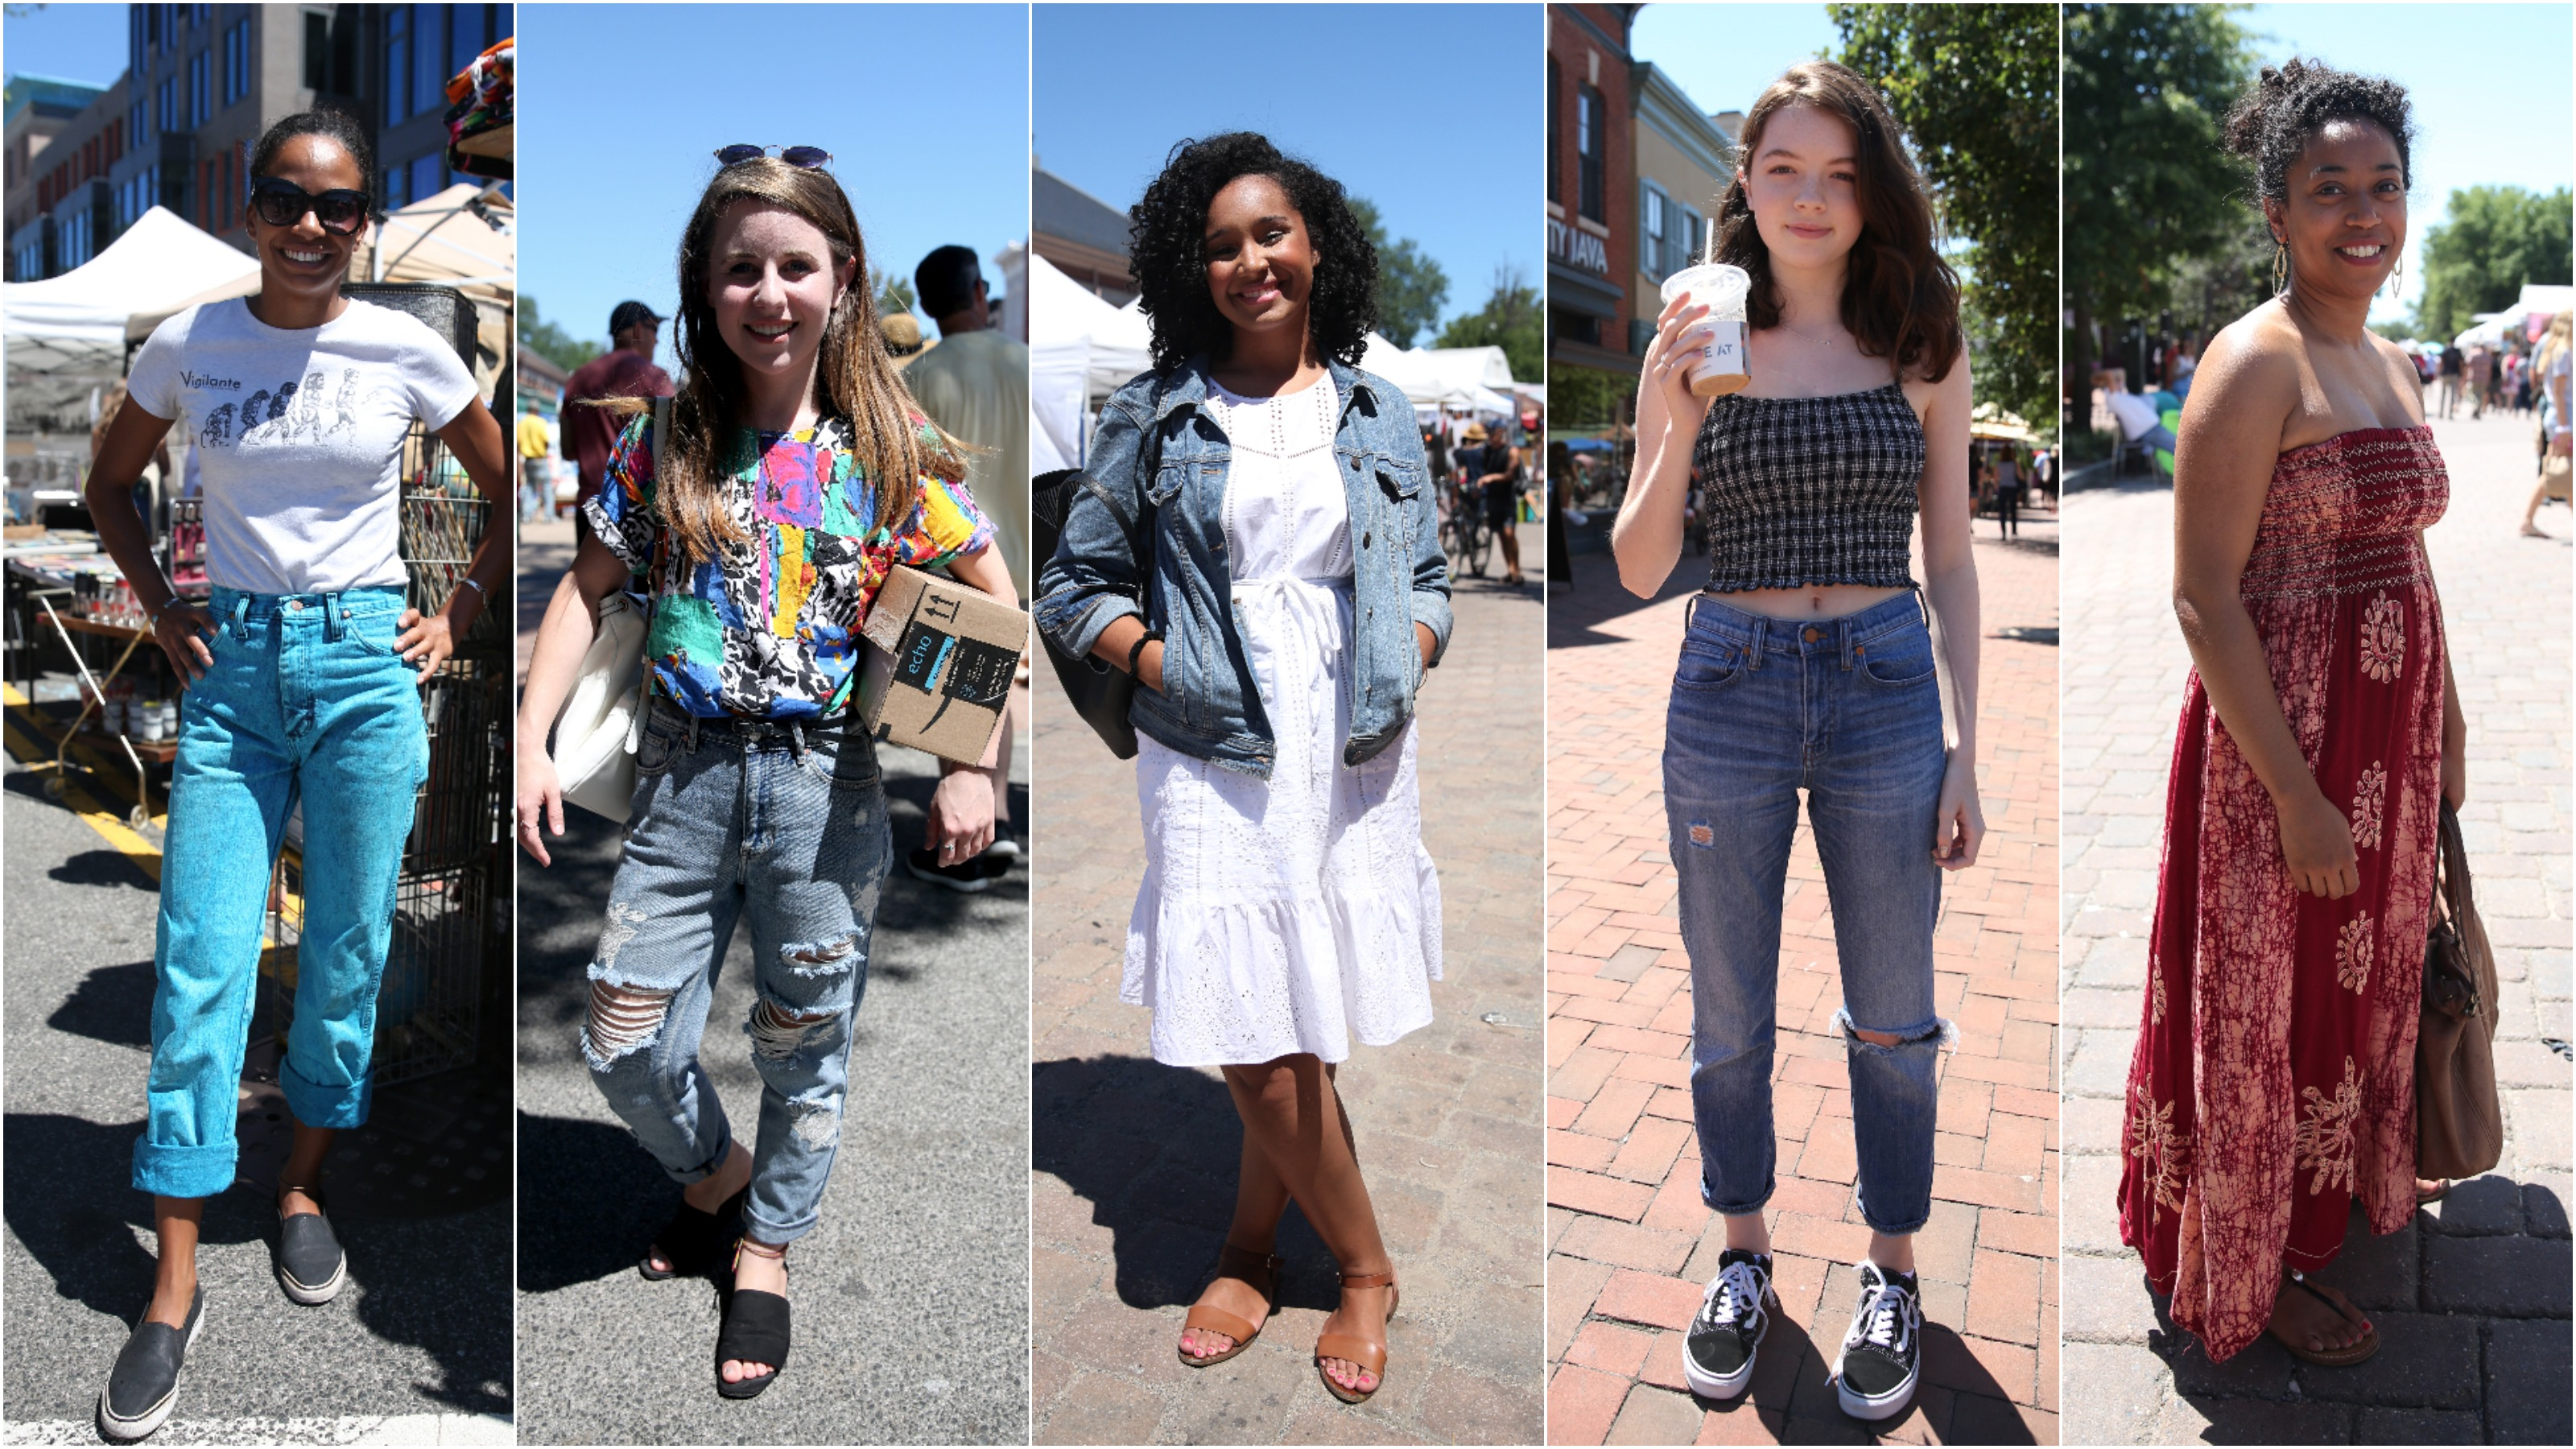 It's tough to look cute during the sweltering D.C. summers, but Washingtonians have it down to a science. Here's our favorite street fashion from July. (Amanda Andrade-Rhoades/DC Refined)